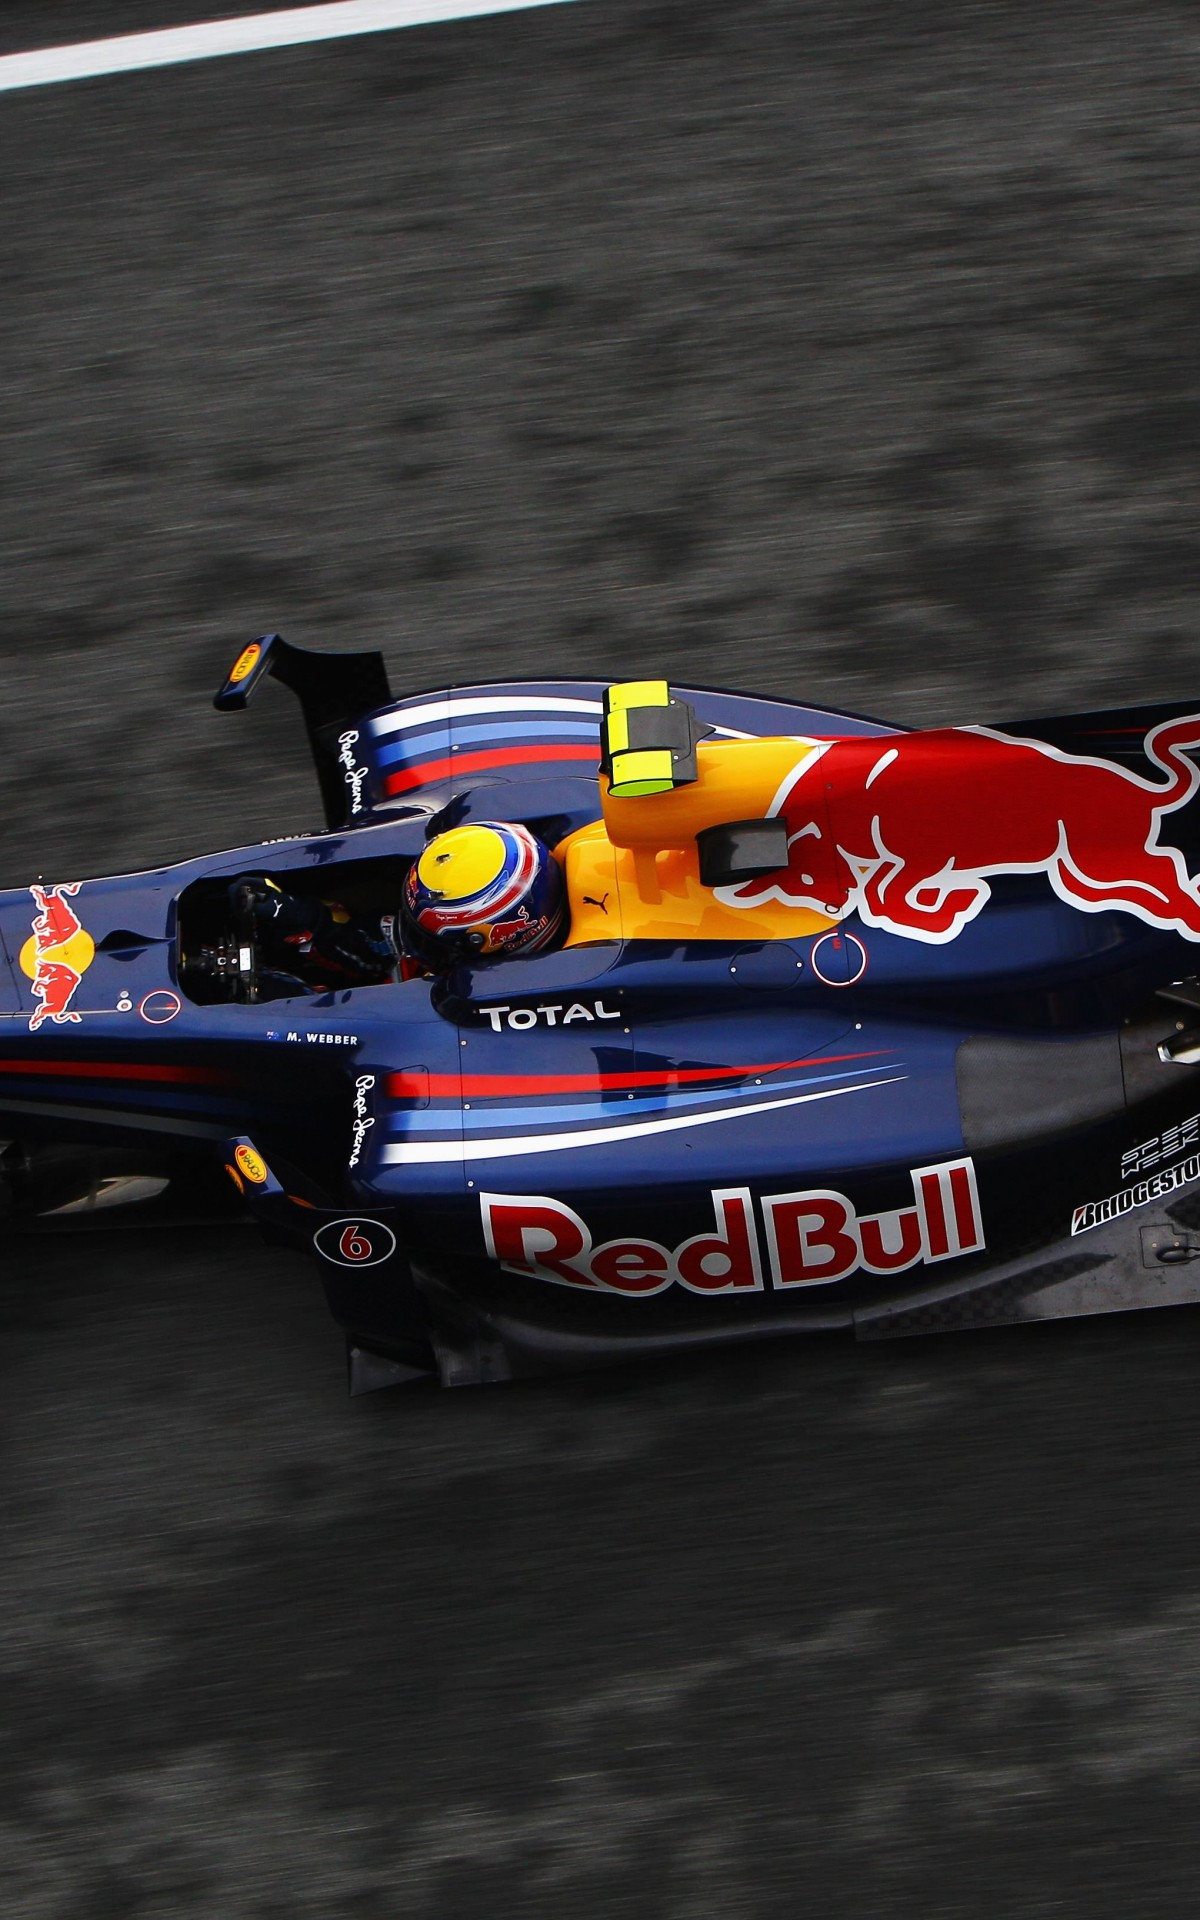 F1 Red Bull Team Wallpaper for Amazon Kindle Fire HDX